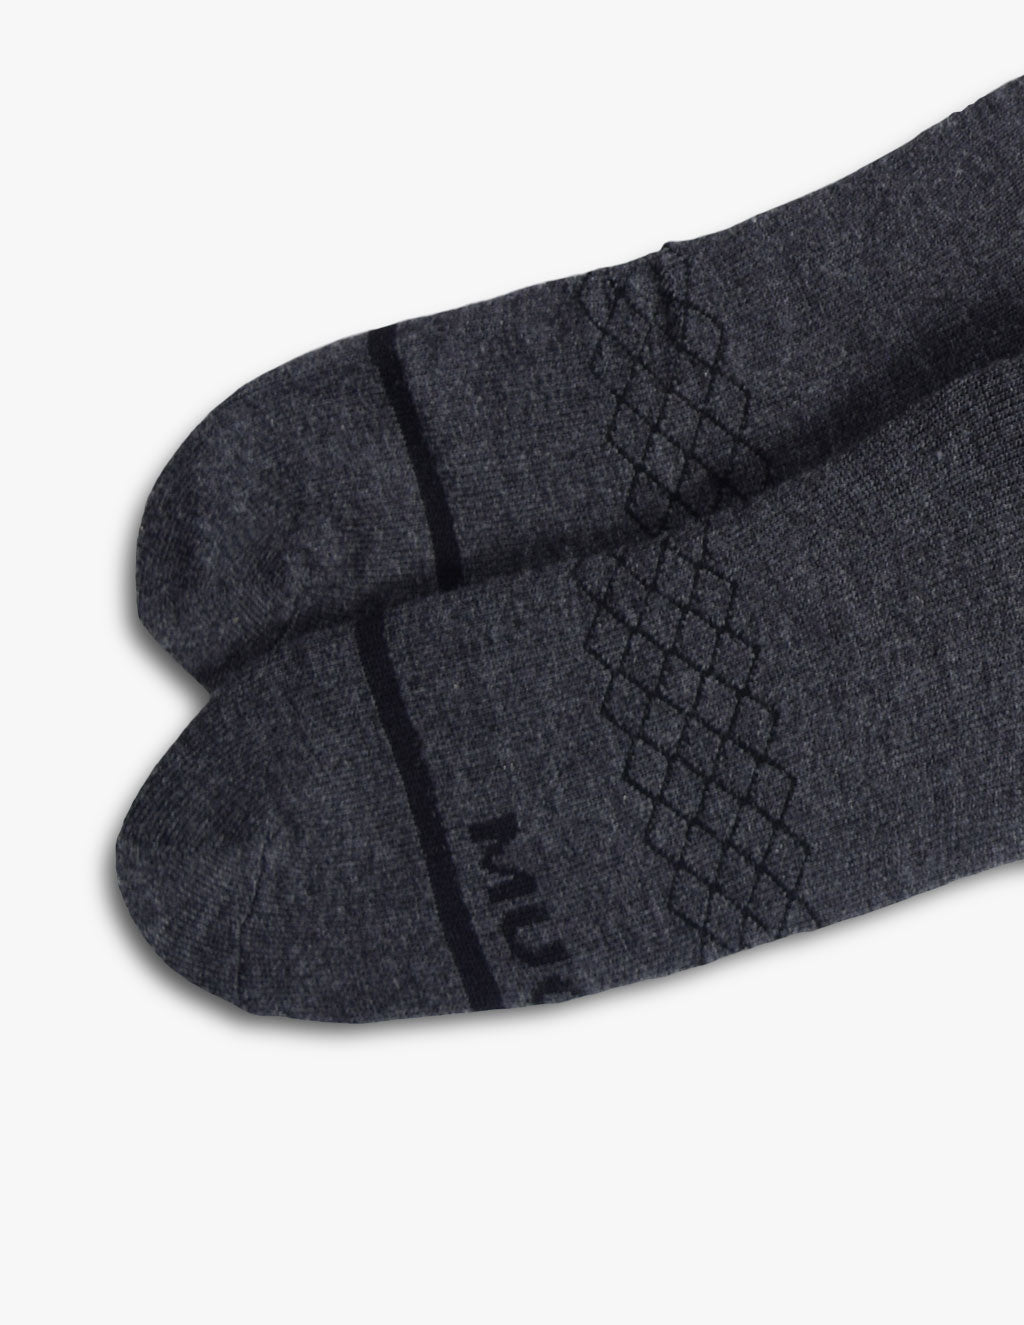 GRAY MERINO SOCKS